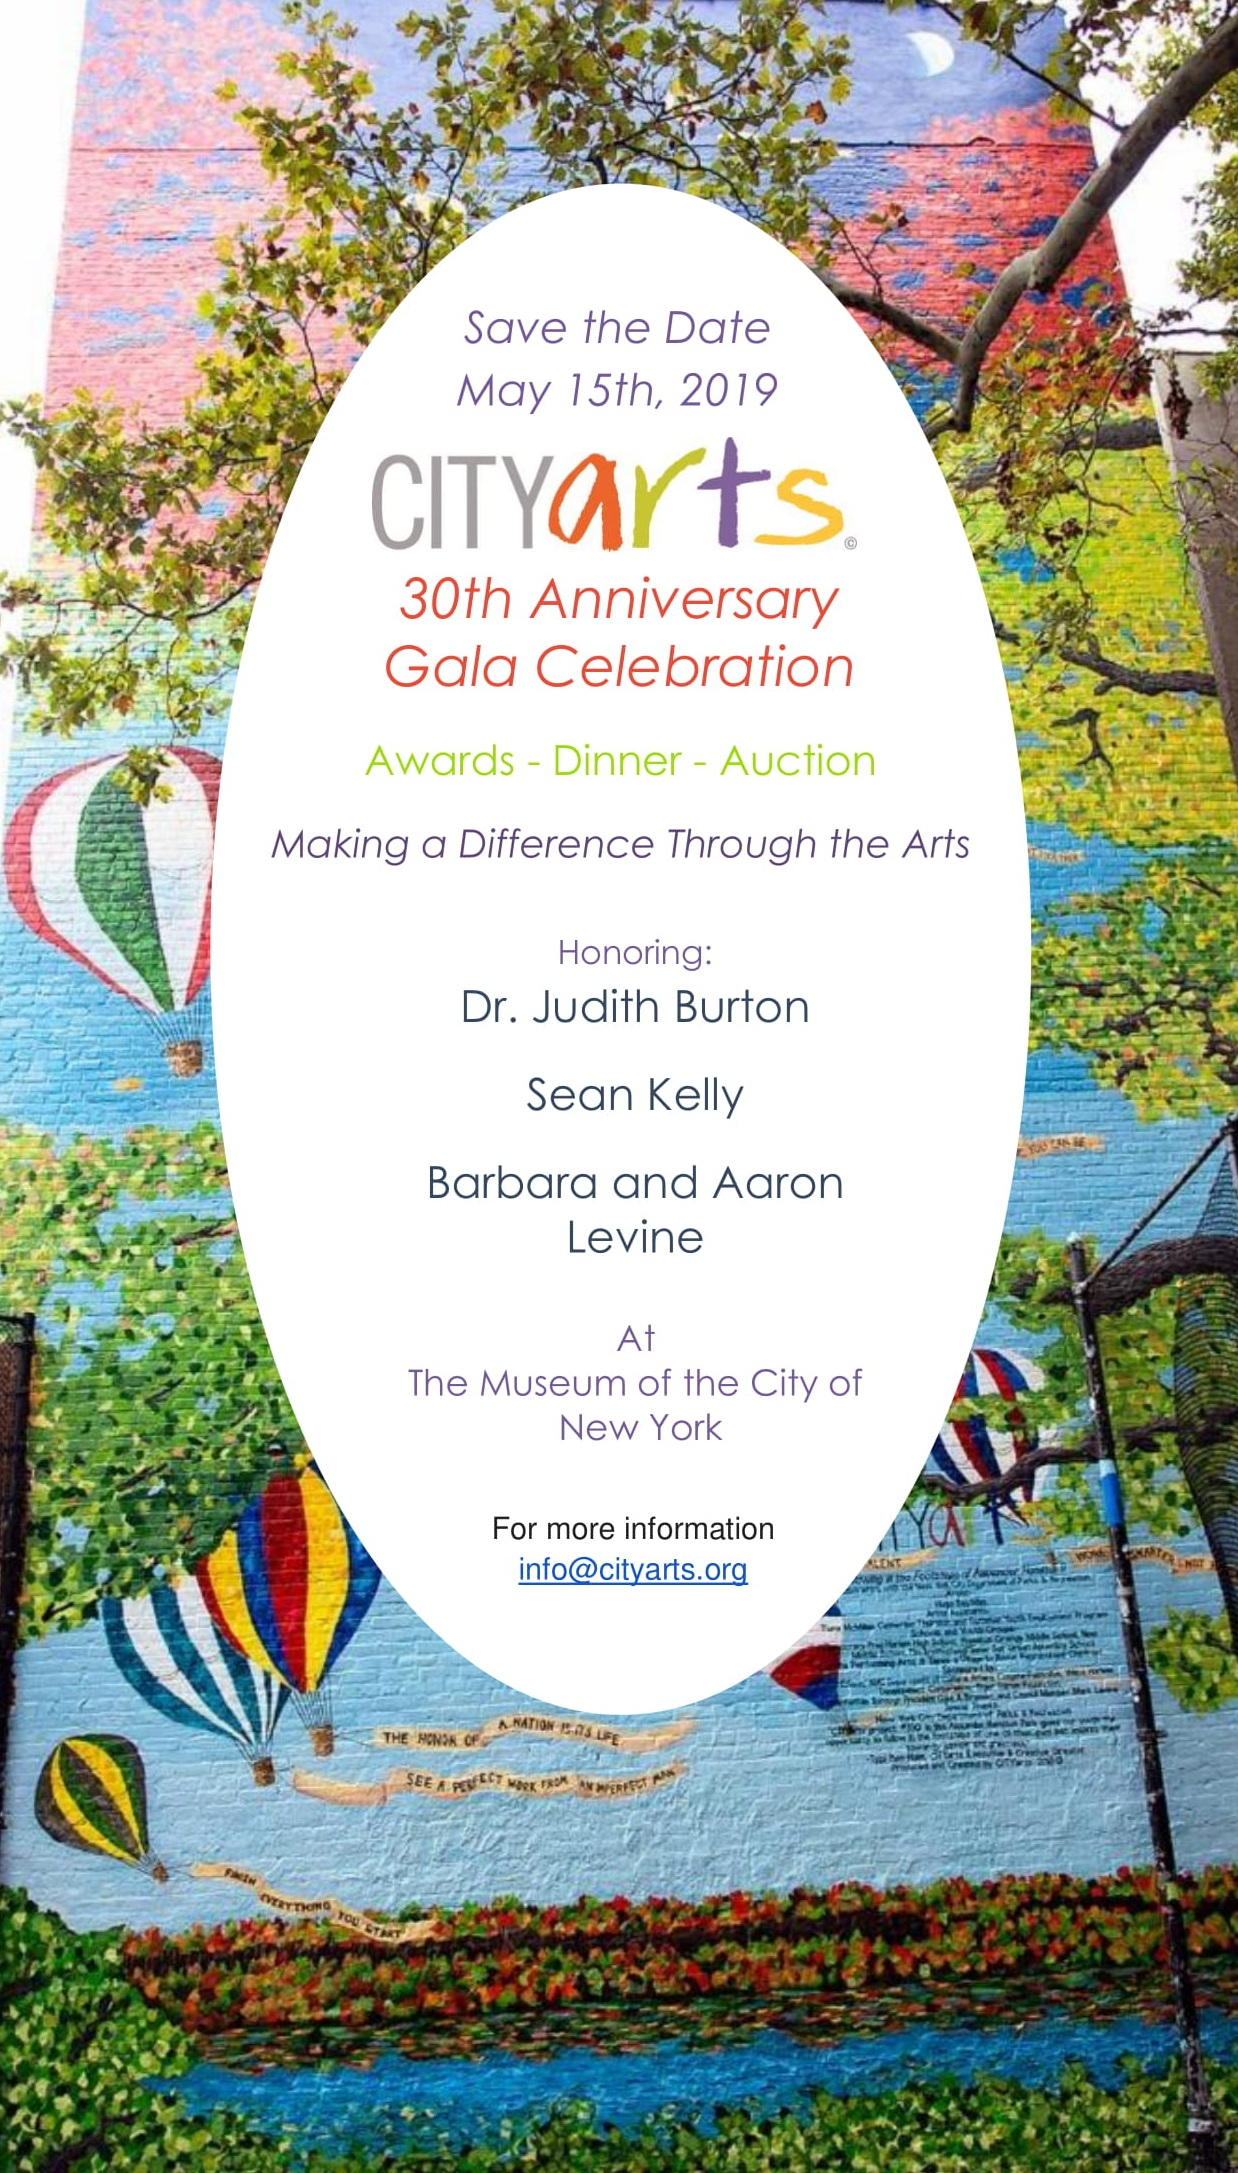 CITYarts+30th+Anniversary+Gala+Celebration-1.jpg